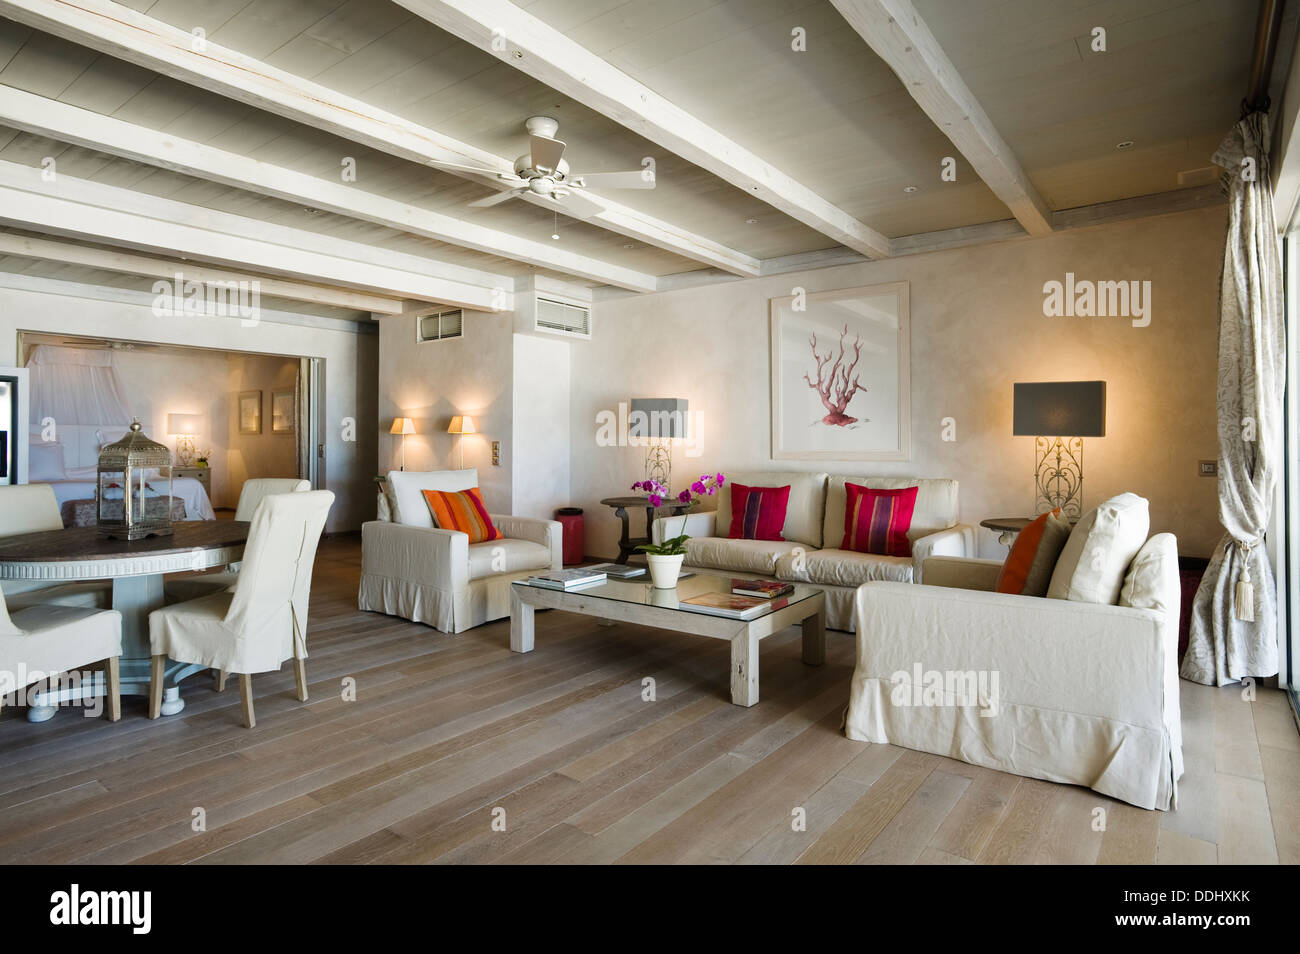 Neutral Coloured Three Piece Suite In Airy Living Room With ...